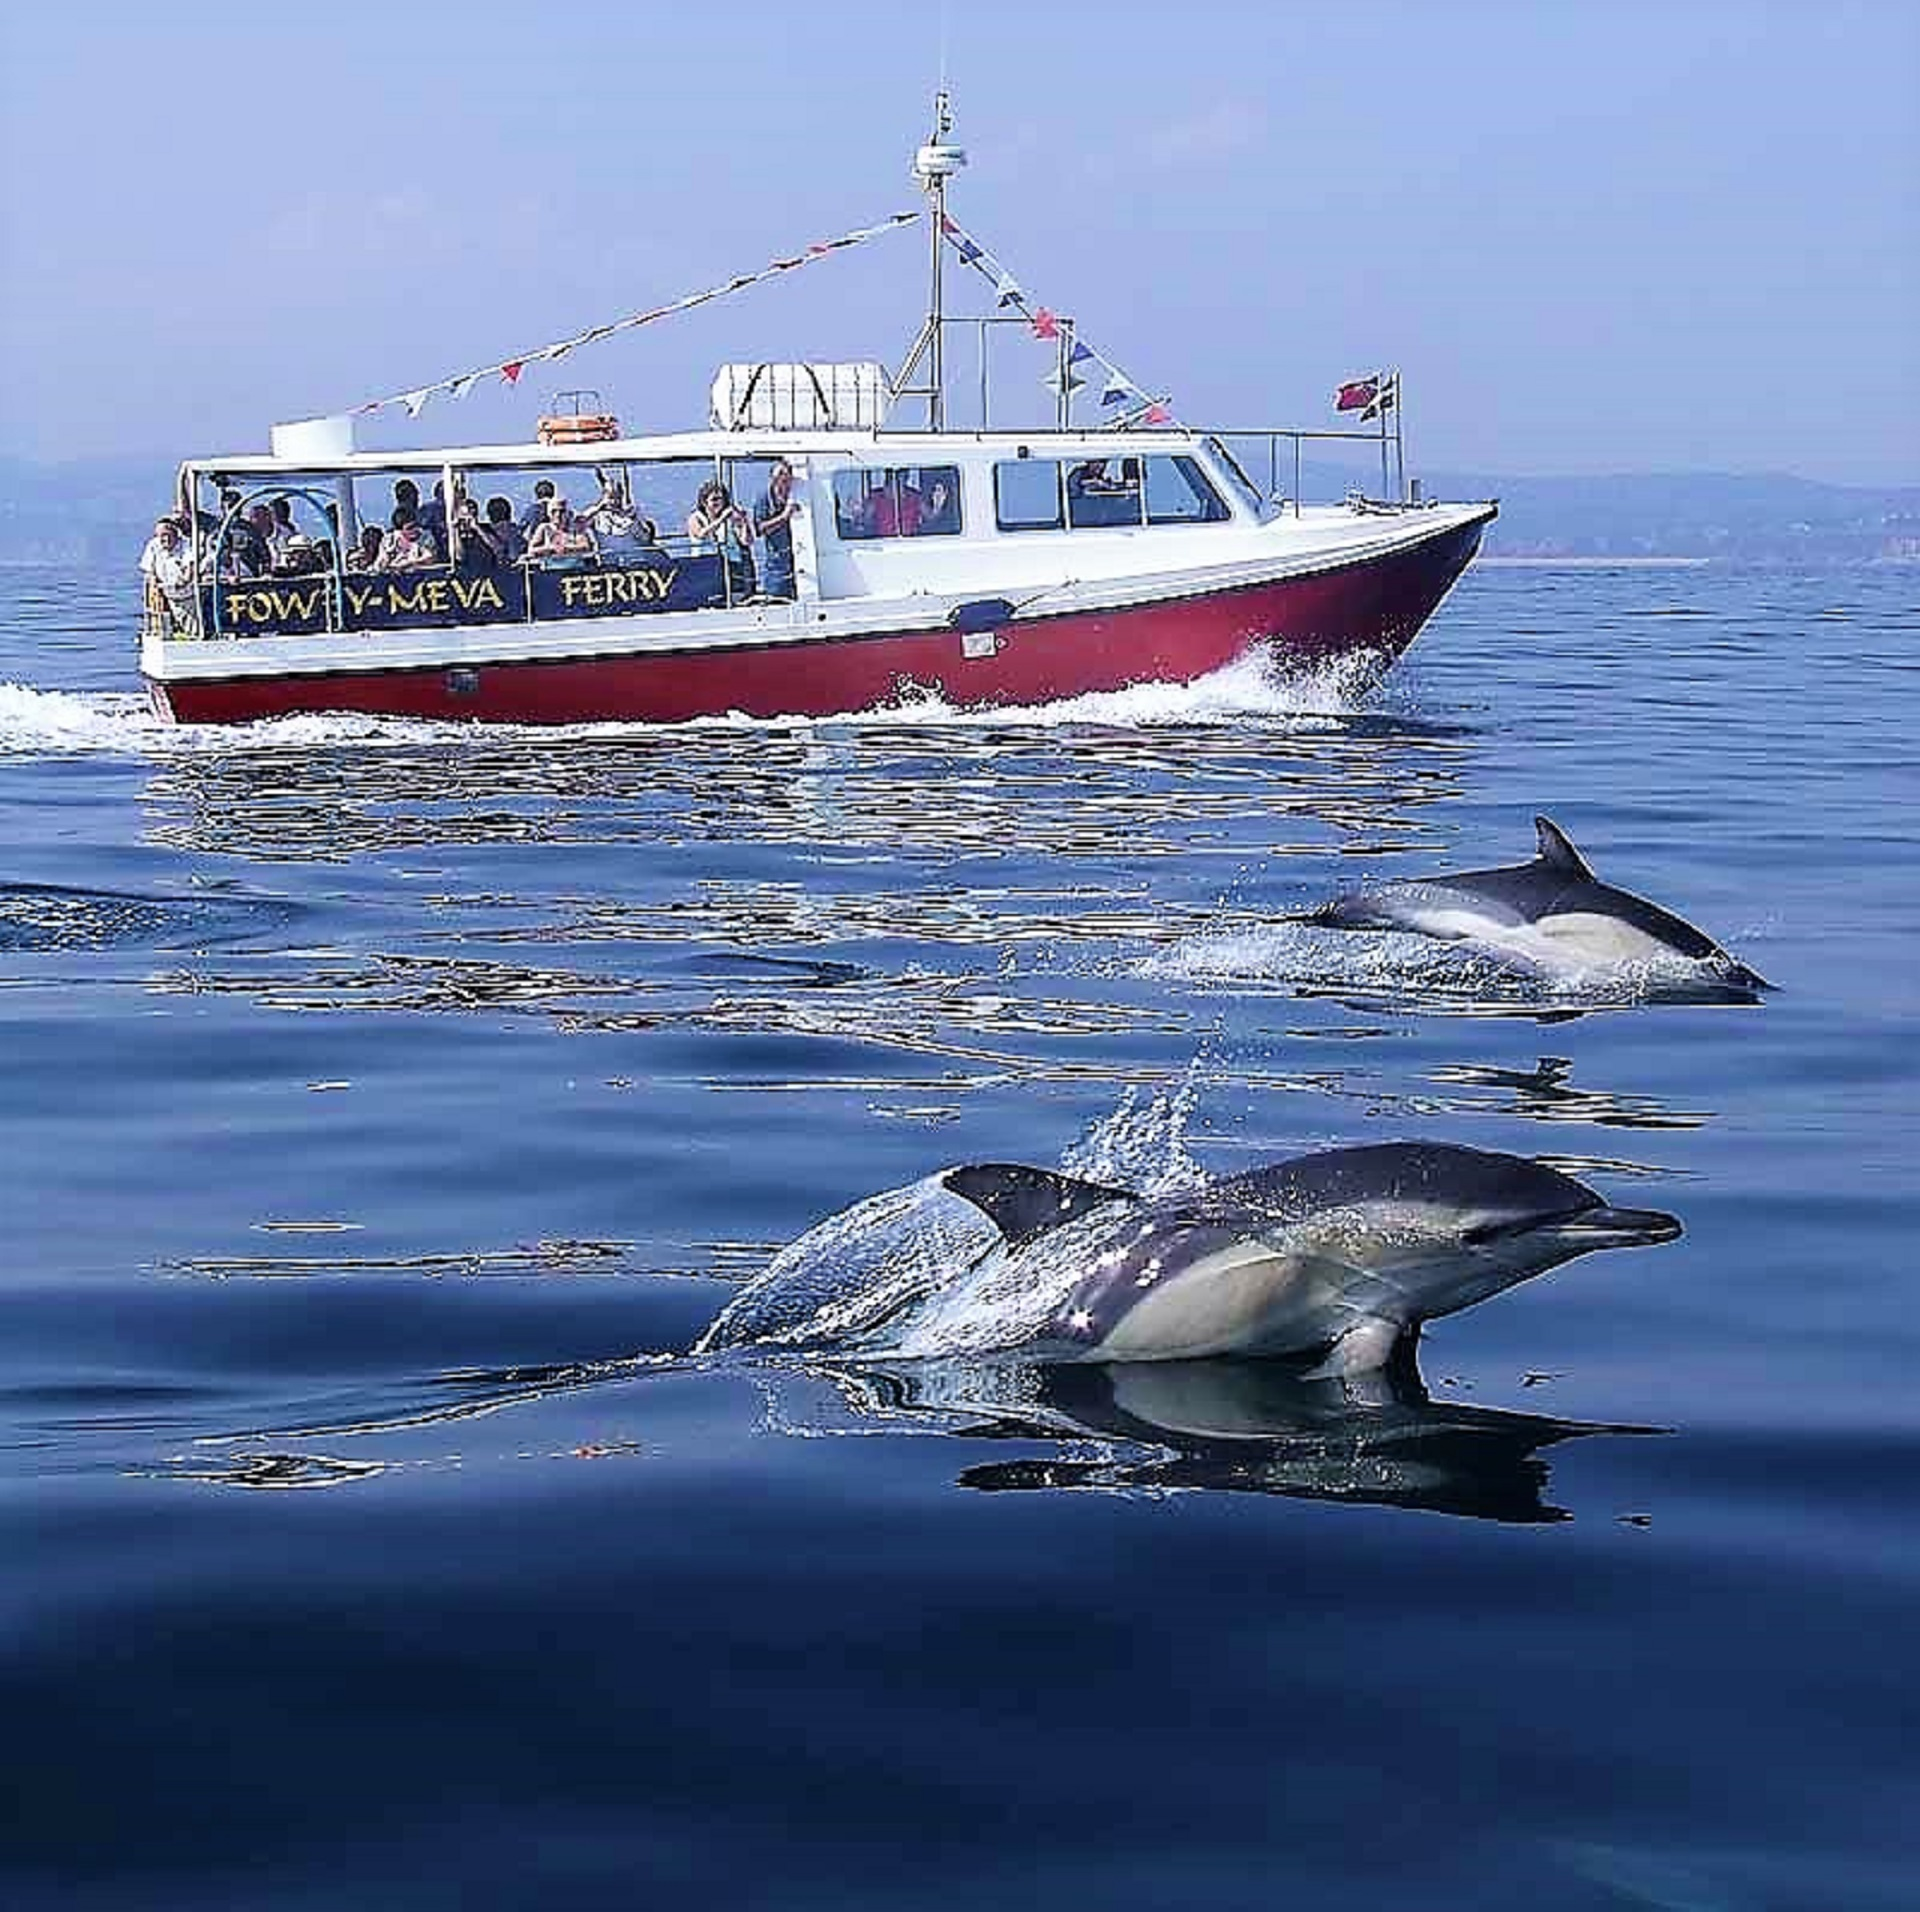 Fowey ferry and dolphins